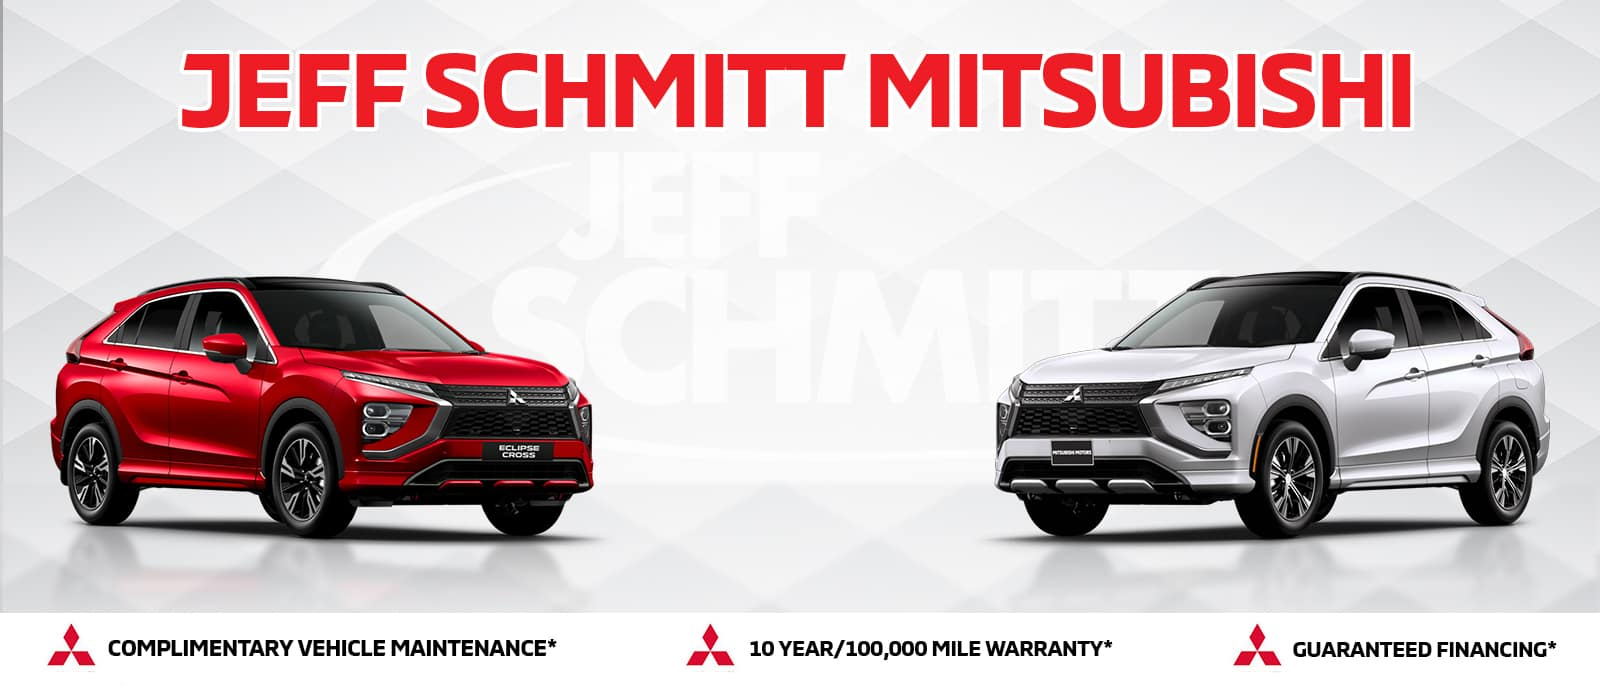 Welcome to Jeff Schmitt Mitsubishi